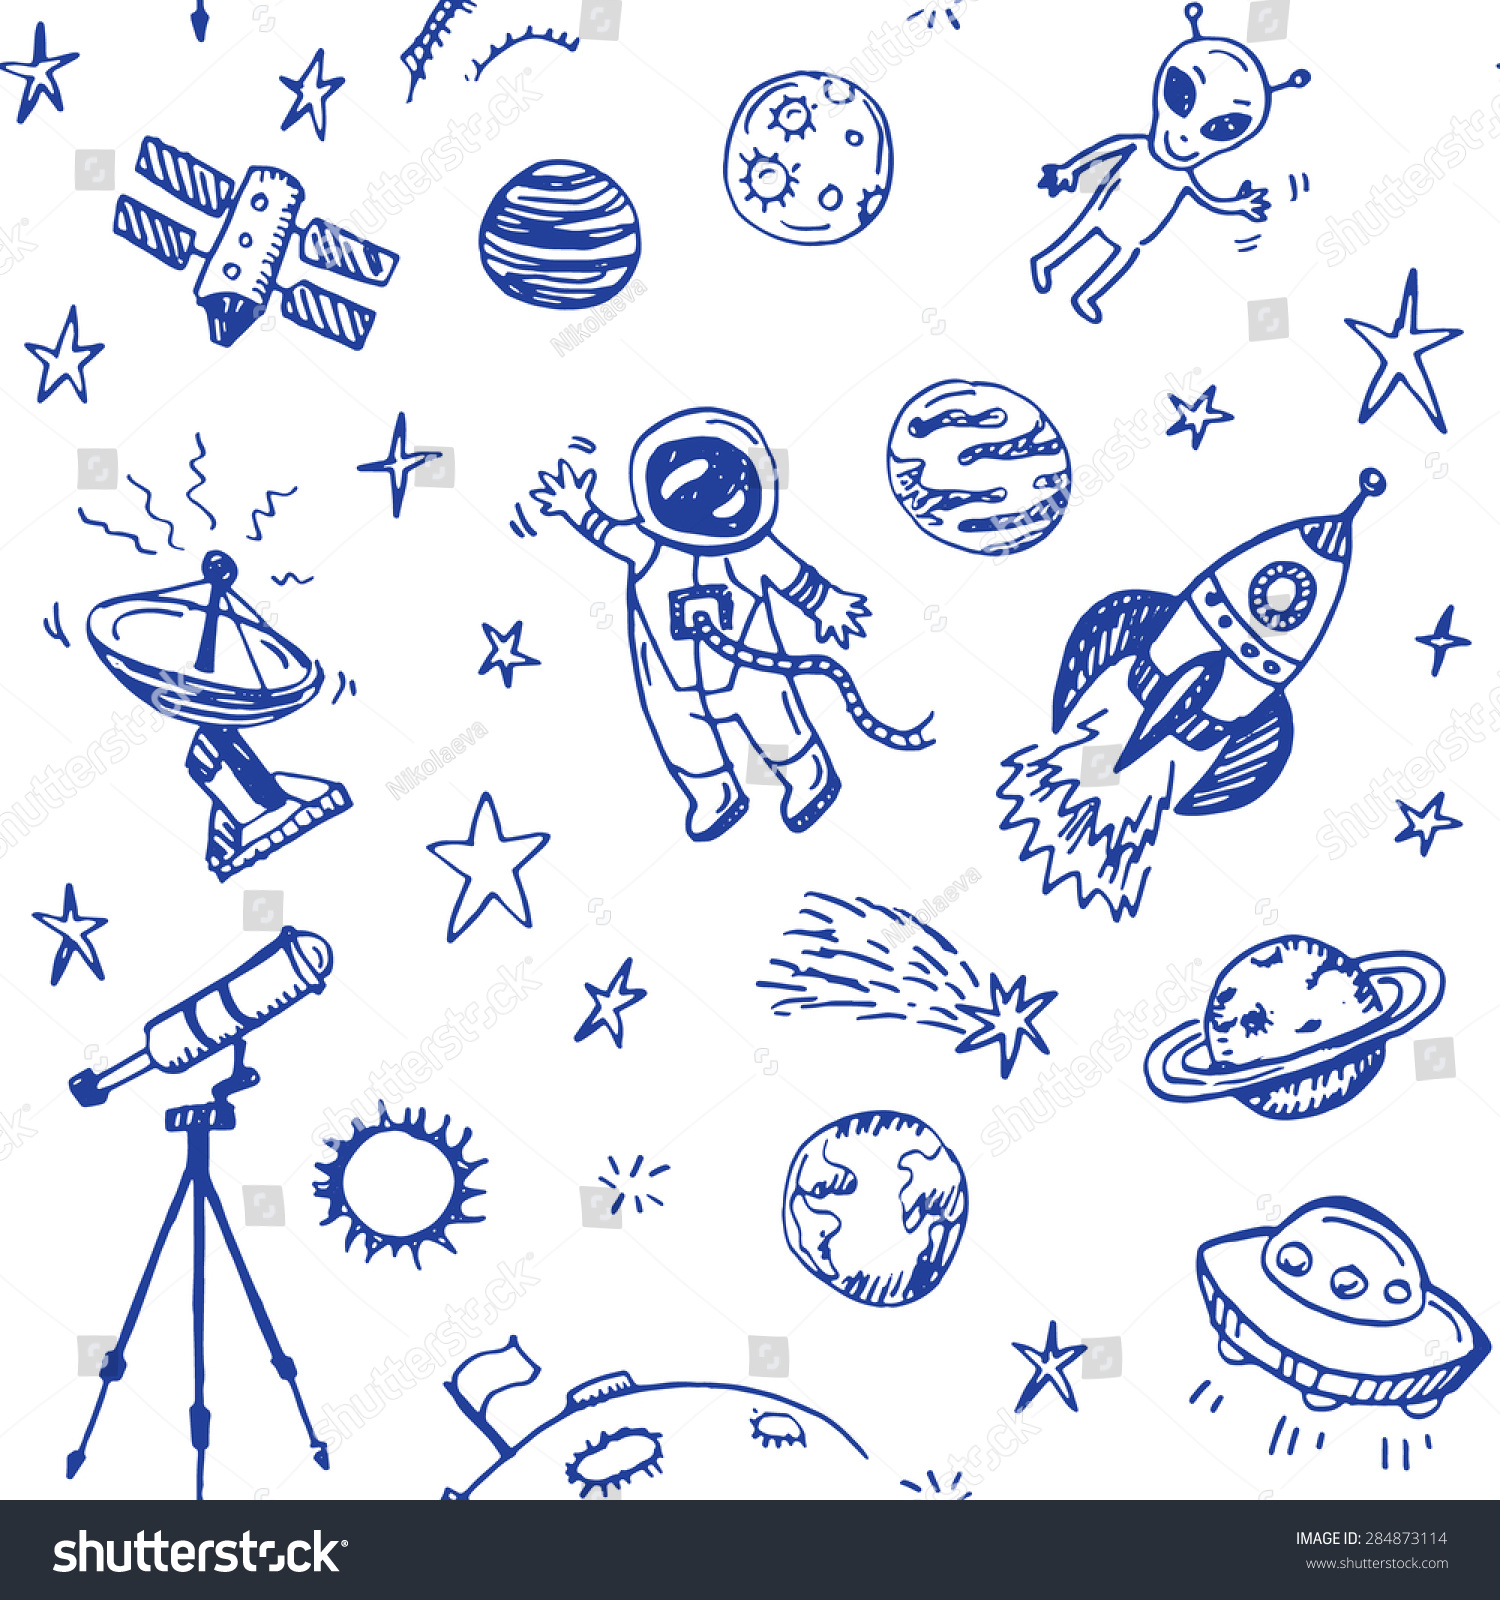 astronomy doodles - photo #39